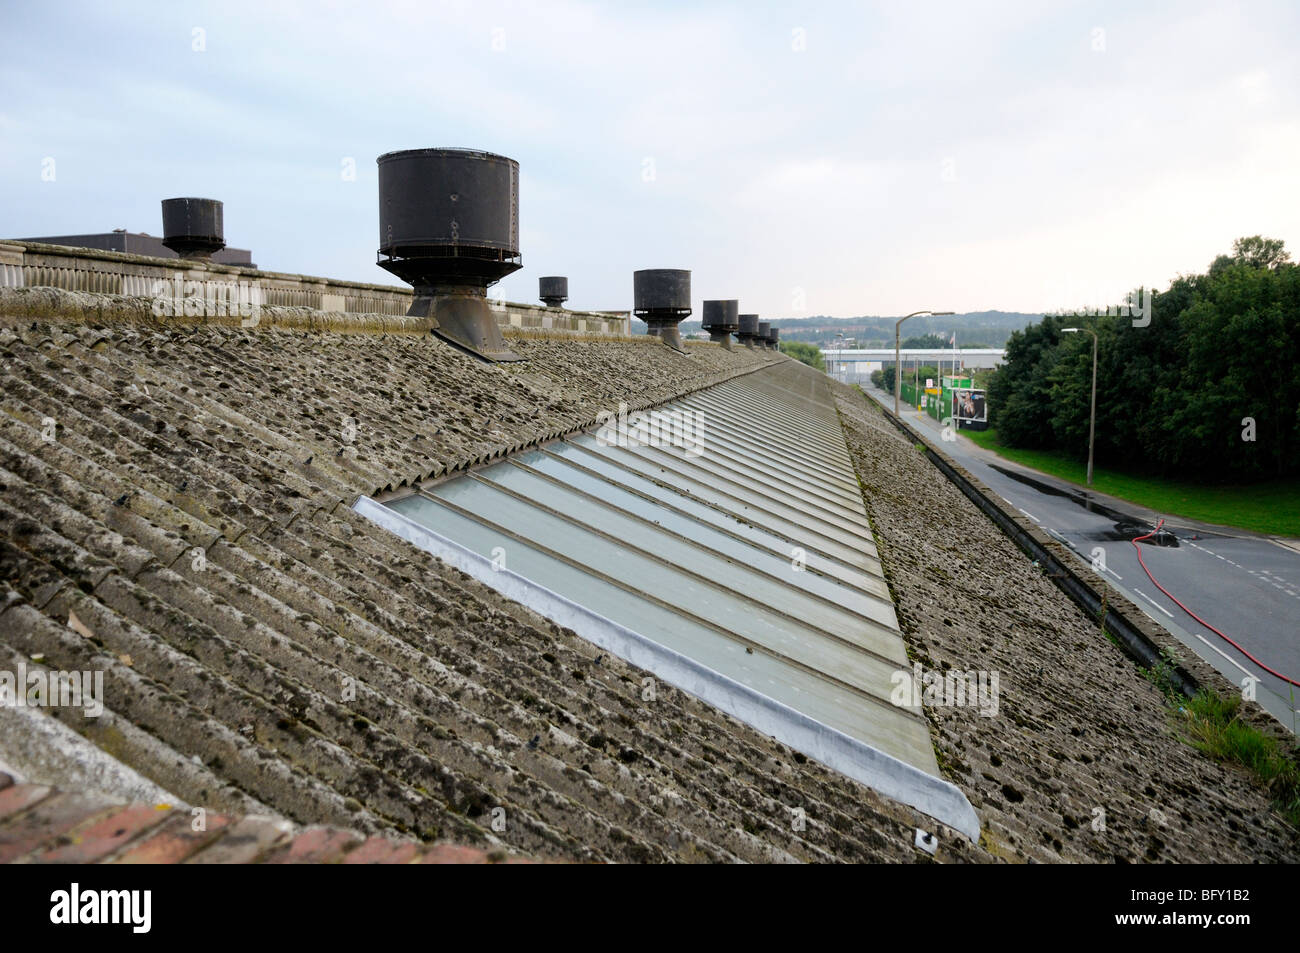 Long Factory Roof Made Of Asbestos Cement Sheeting Showing